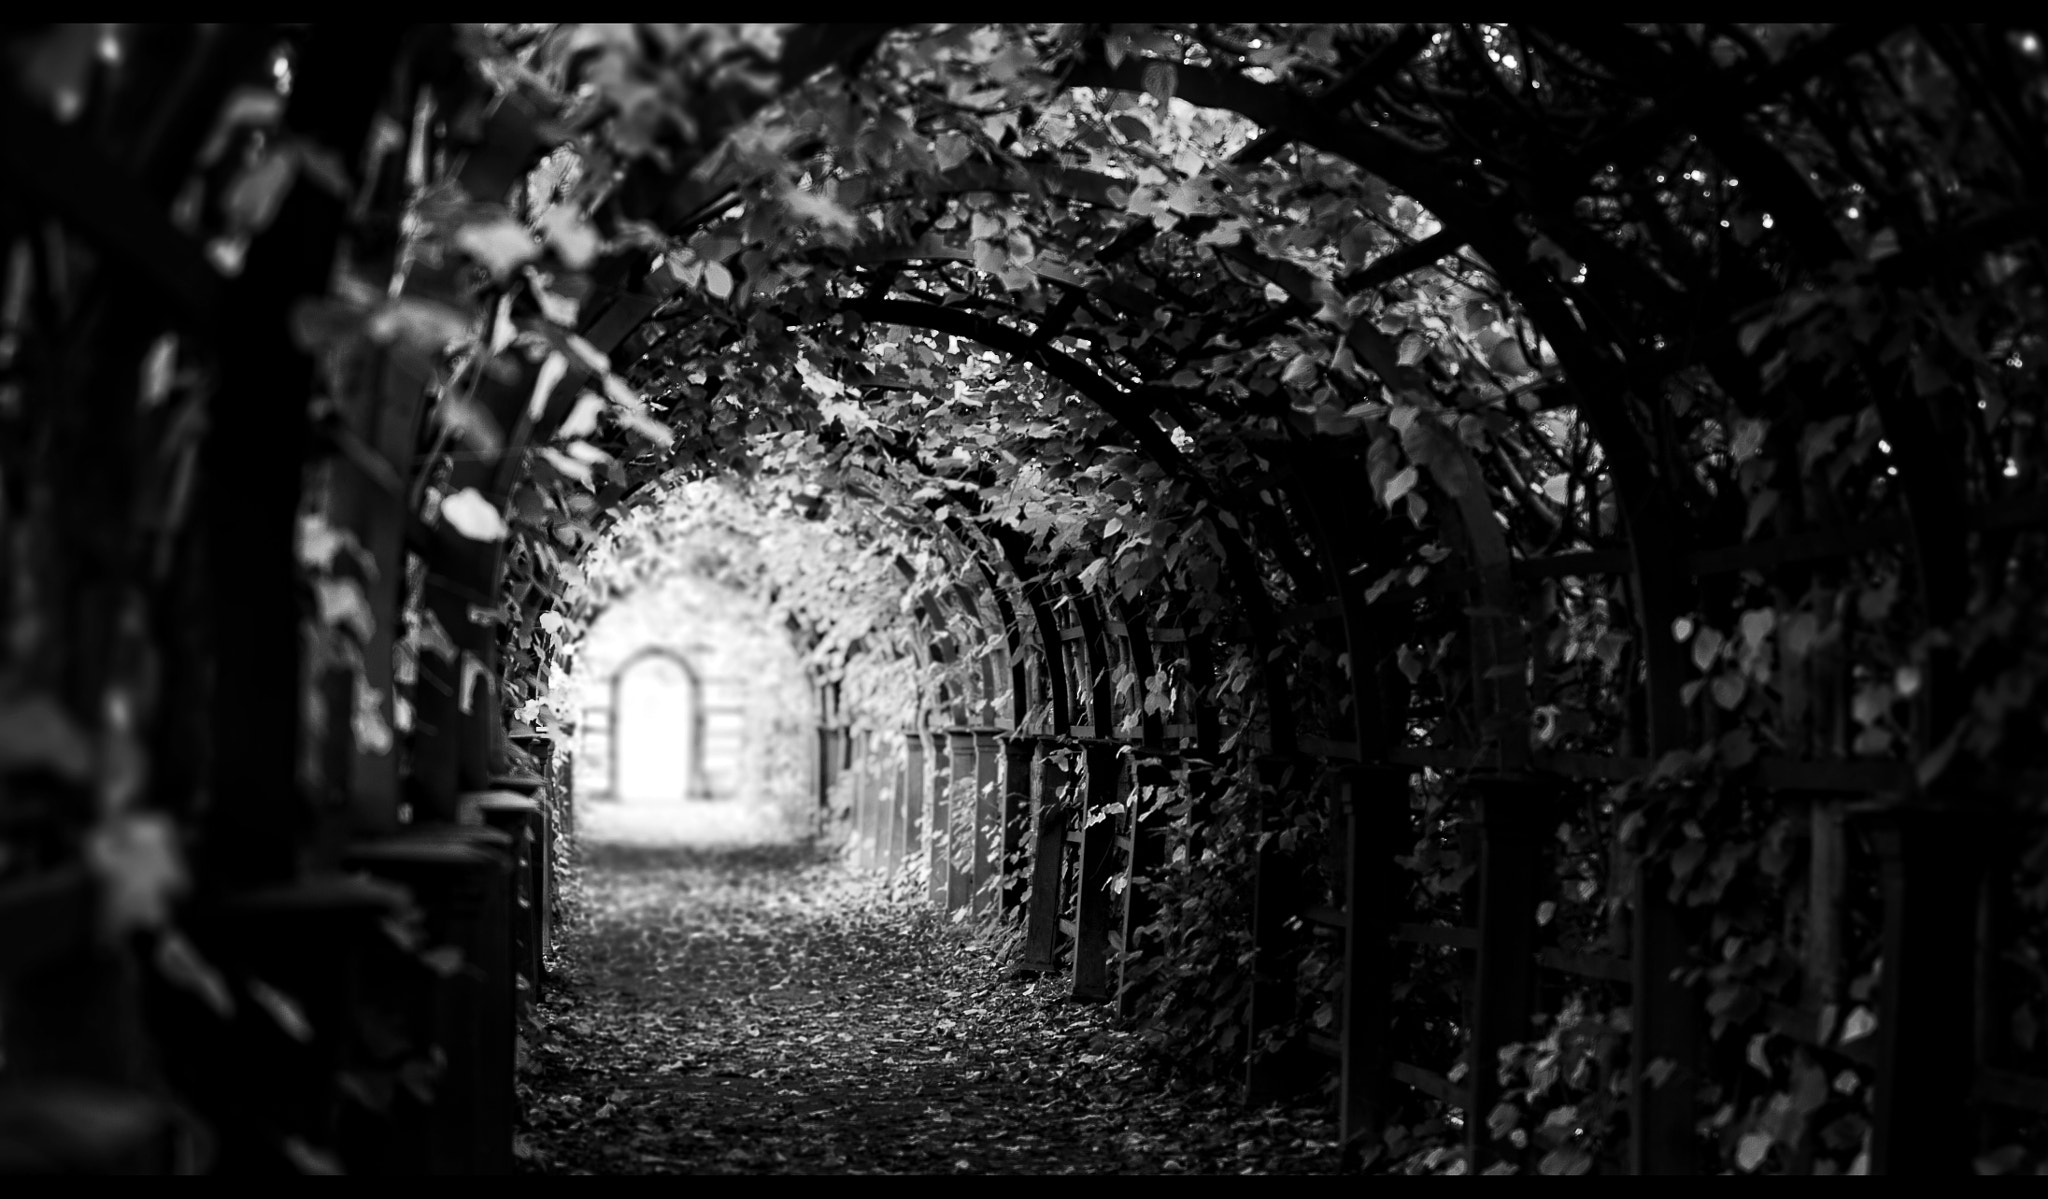 Photograph Tunnel. by Frank Schillinger on 500px